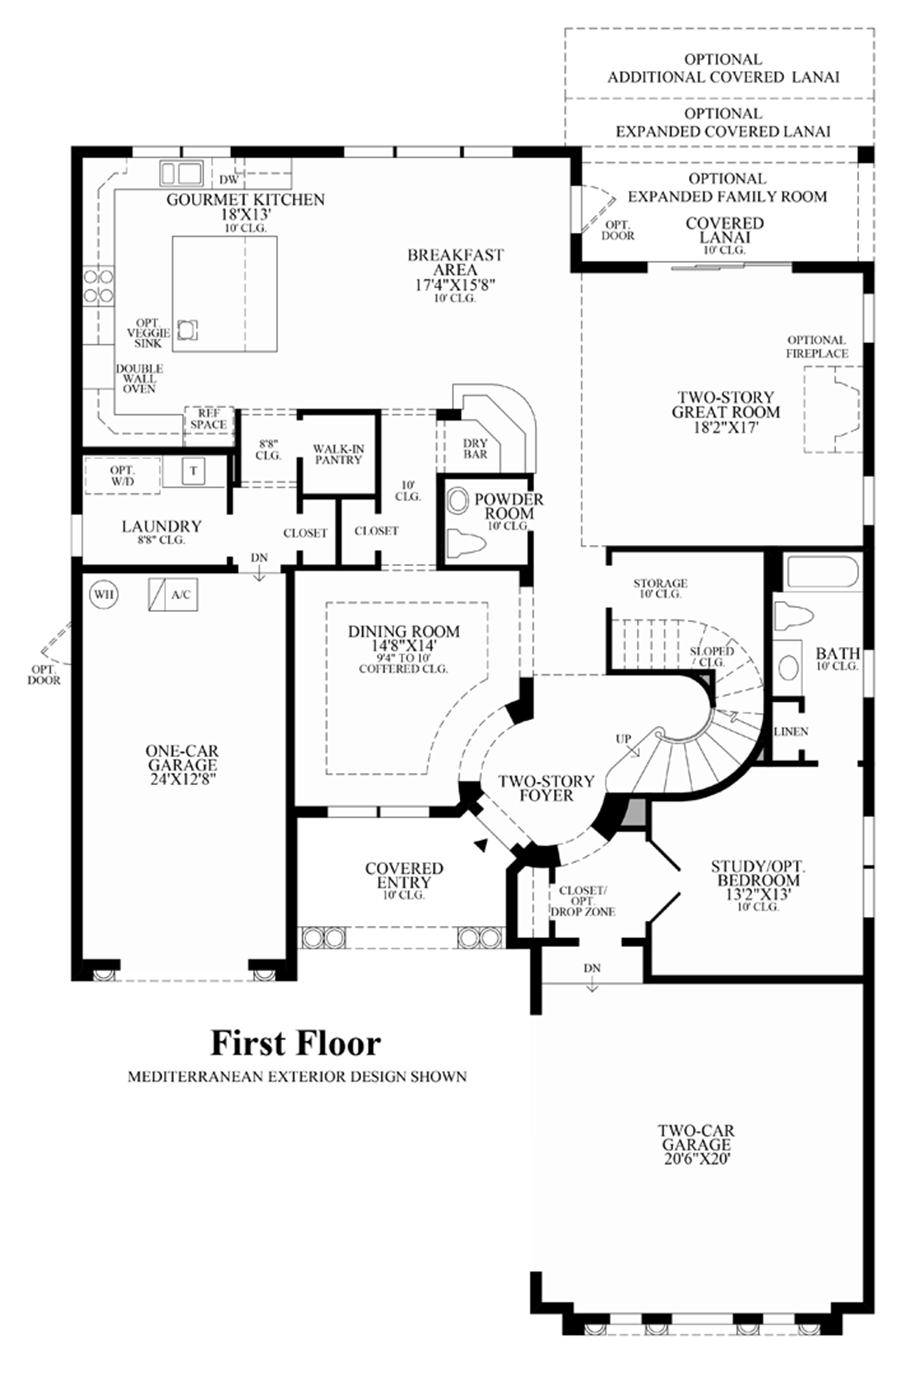 wci parkland golf and country club floor plans